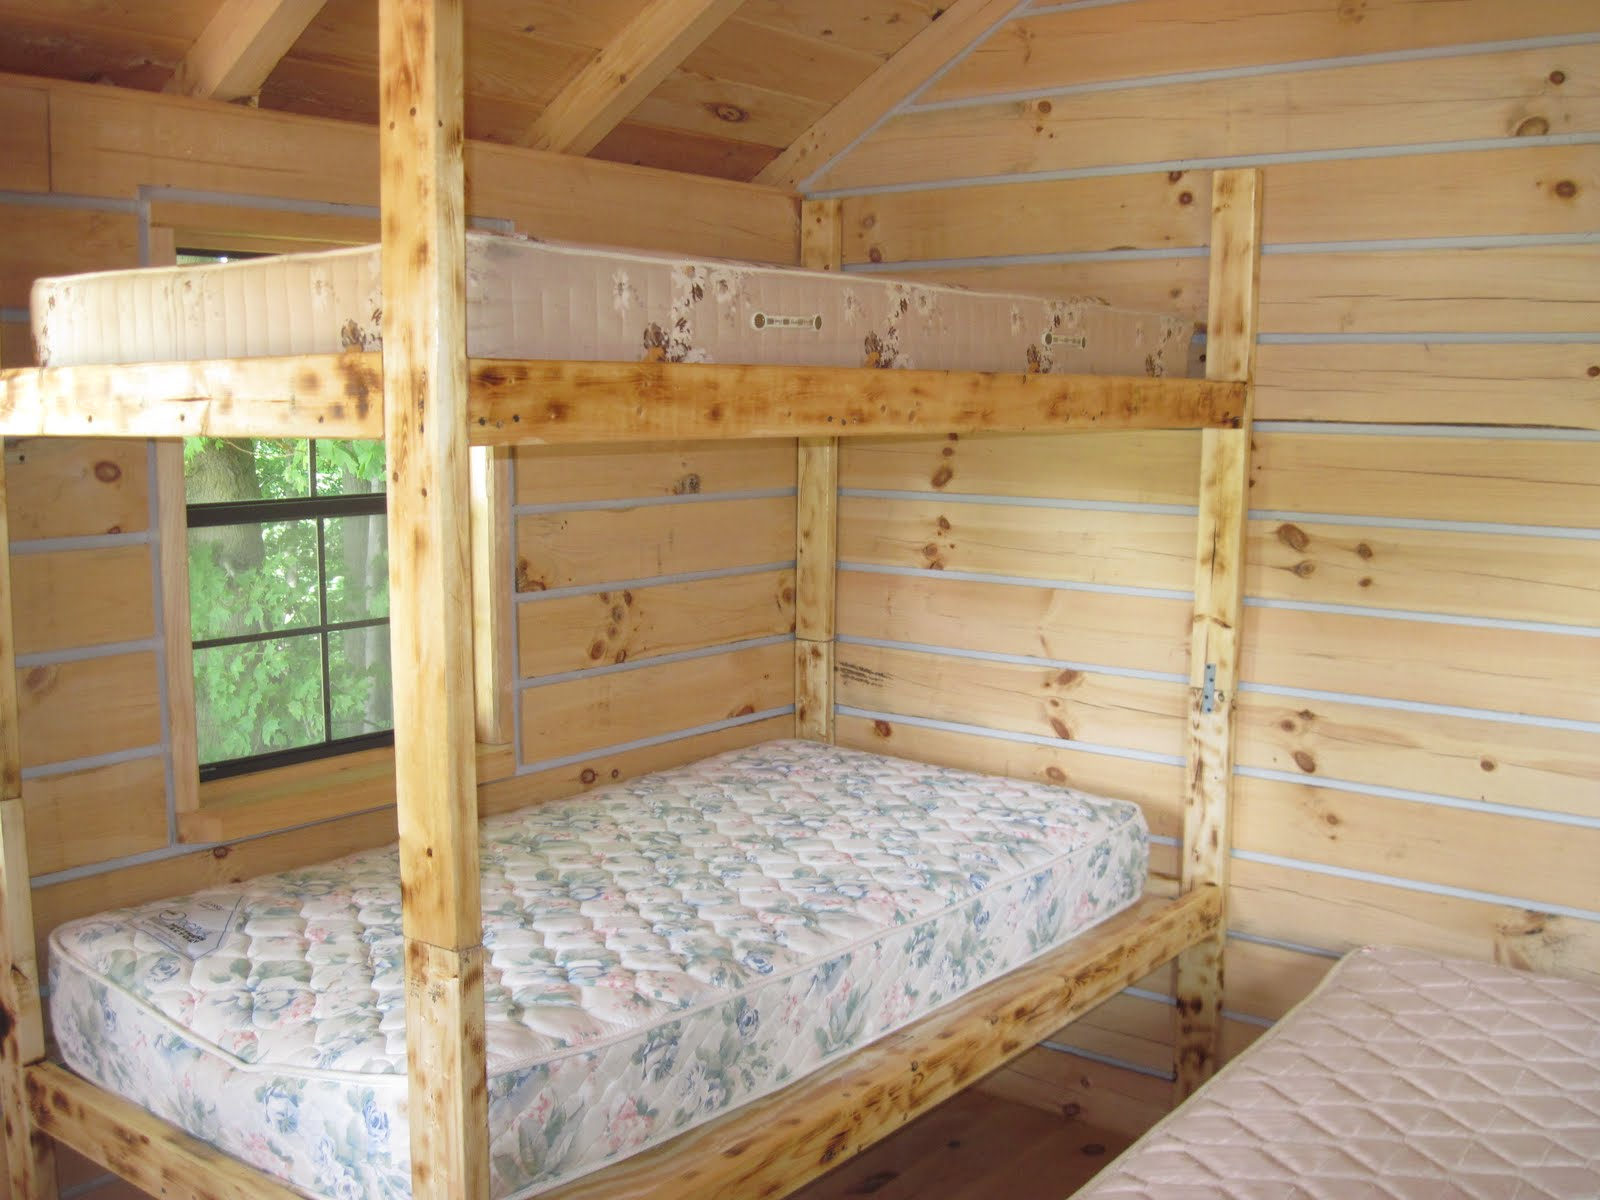 Twin Over Queen Bunk Bed Plans | BED PLANS DIY & BLUEPRINTS